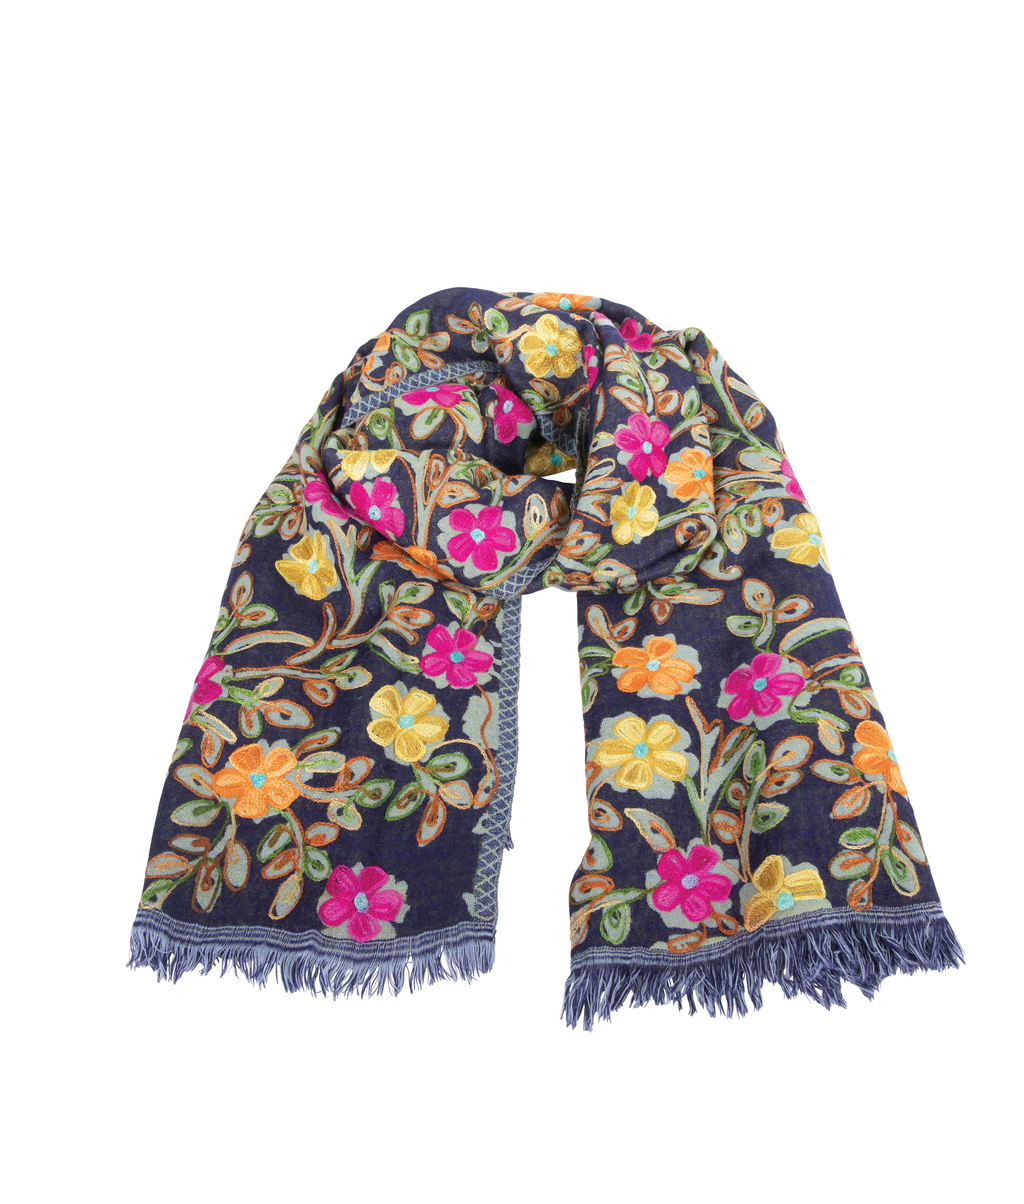 WOOL Scarf - Electric Garden